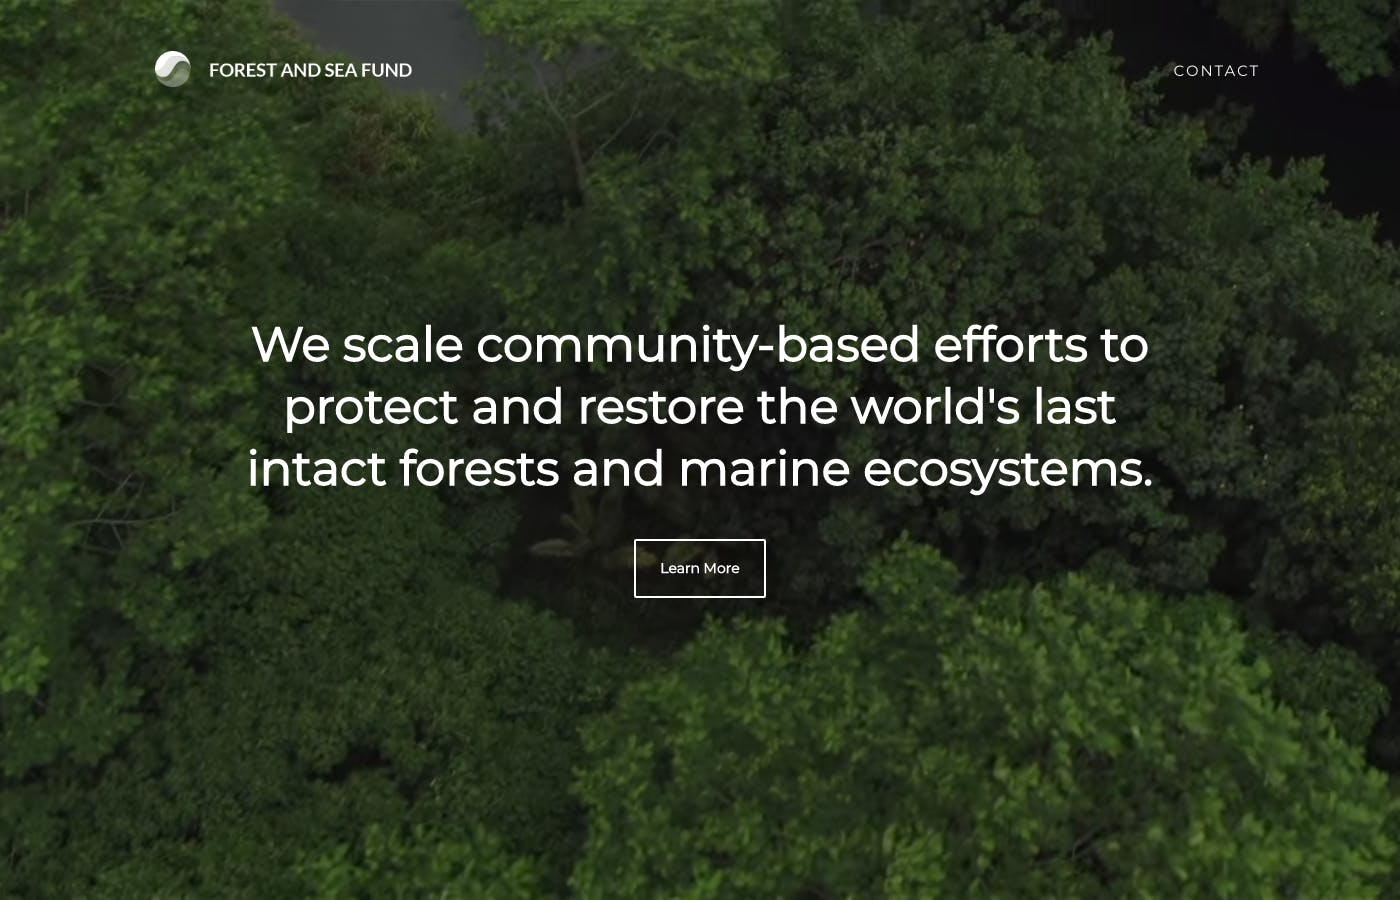 Forest and Sea Fund